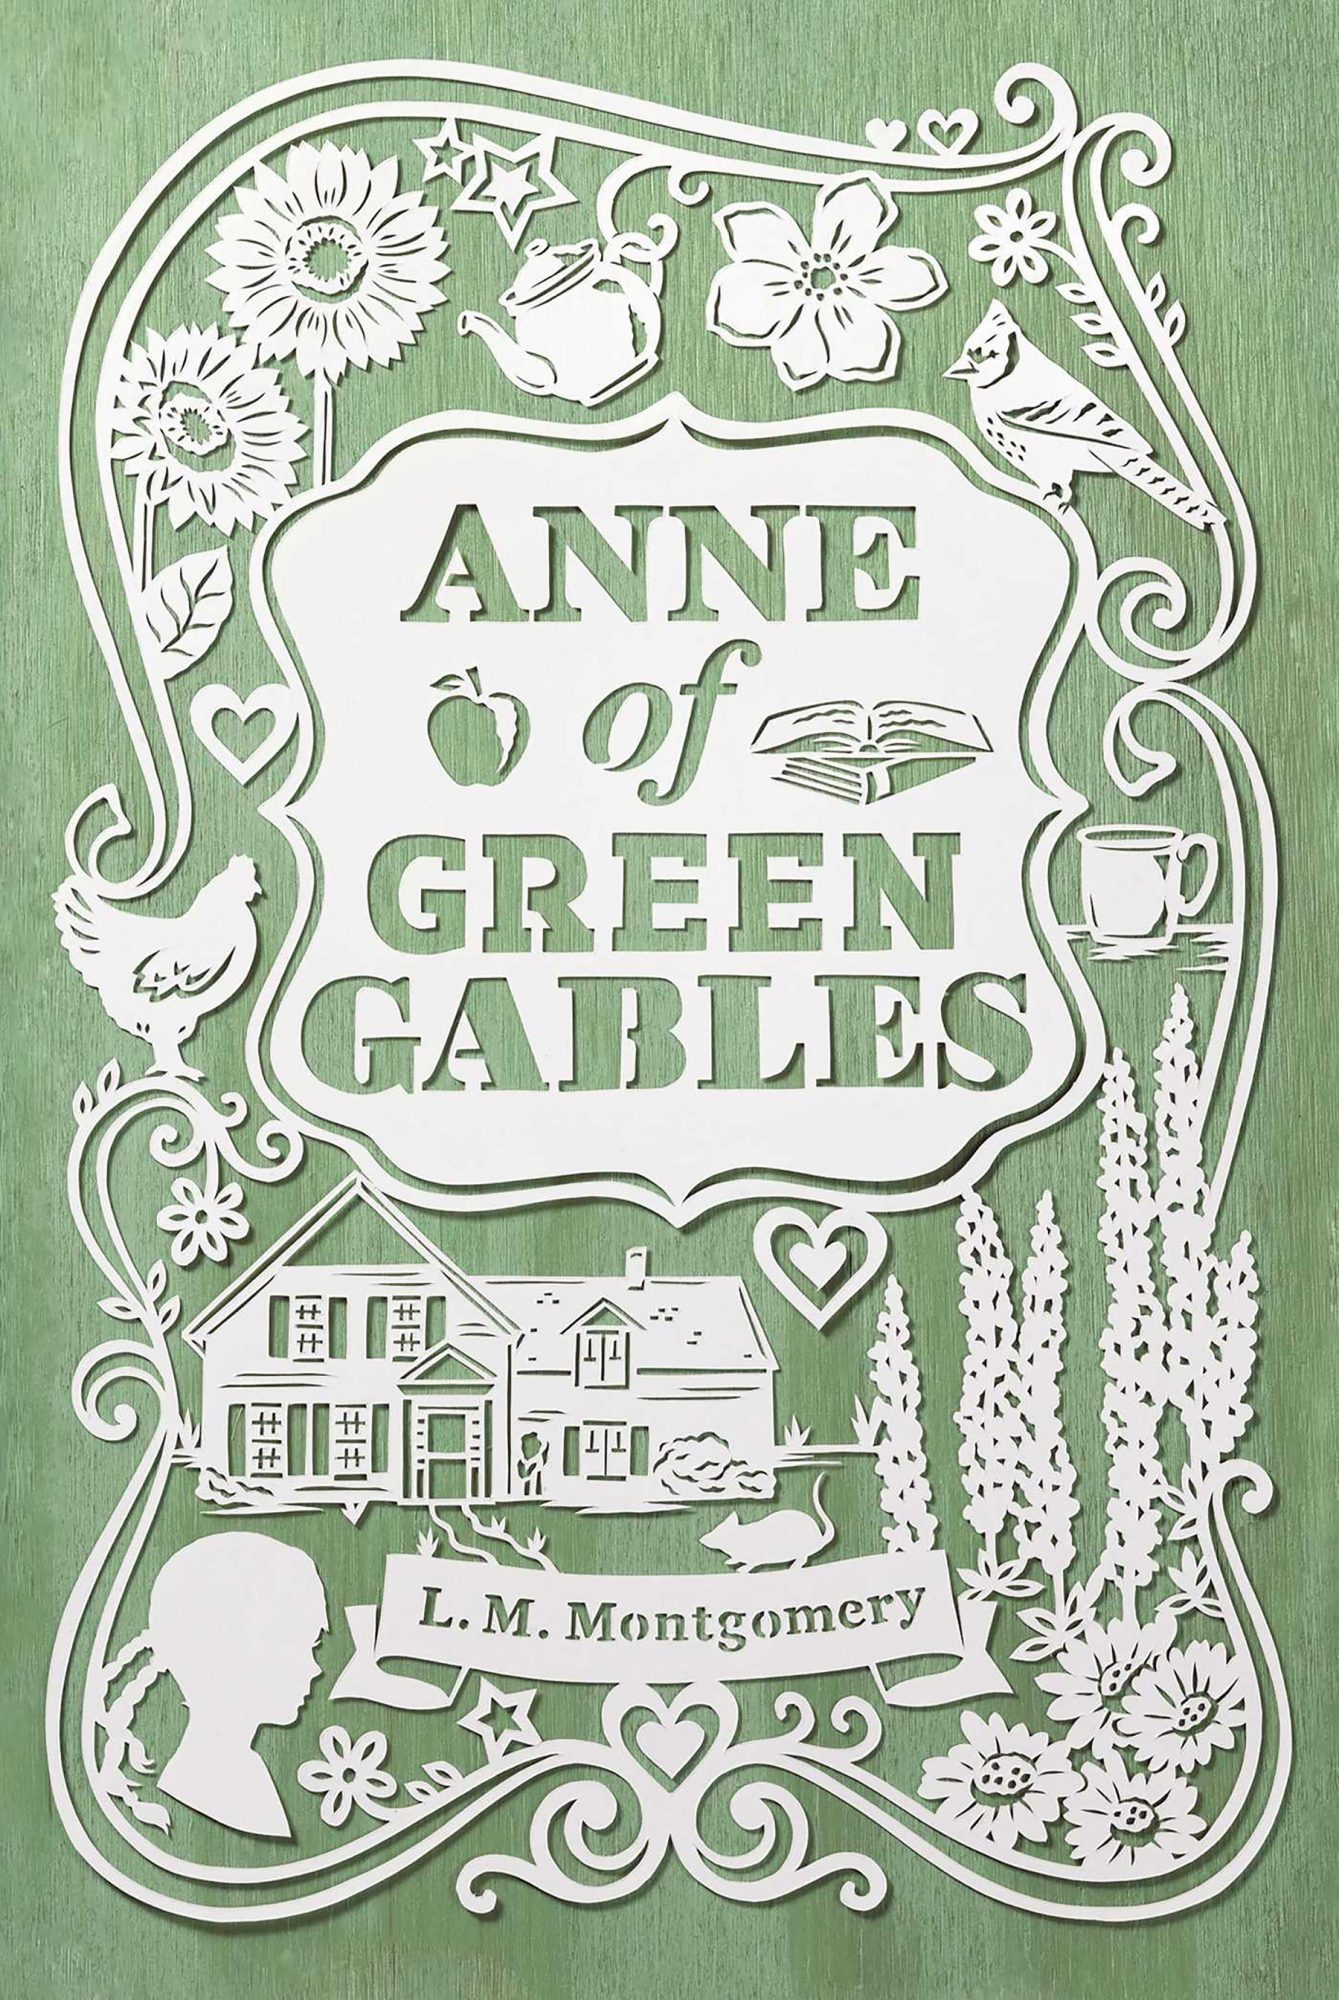 Anne of Green GablesOriginally published 1908/2016 coverLucy Maud Montgomery